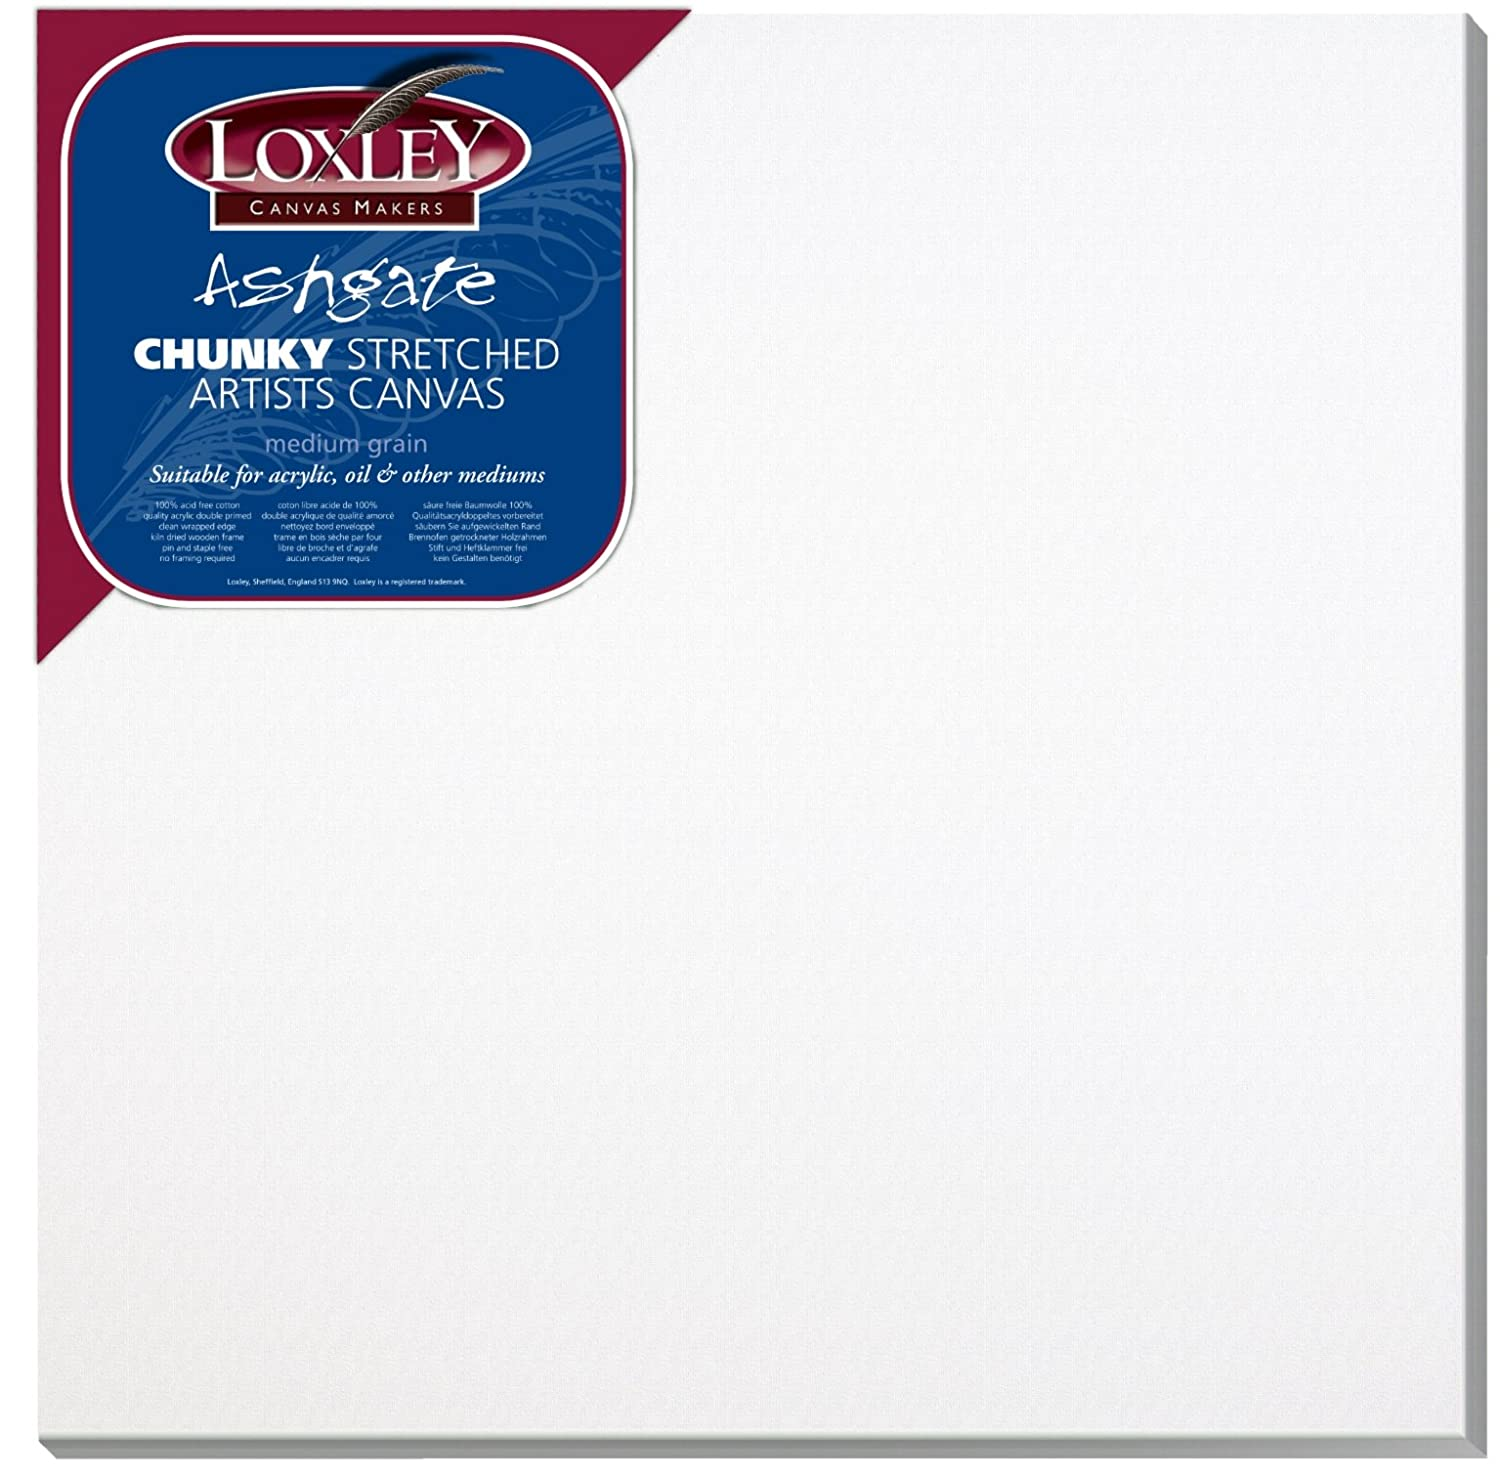 Loxley 24 x 24-inch Deep 36 mm Edge Ashgate Chunky Stretched Artists Canvas, White Colourfull Arts ACC-2424